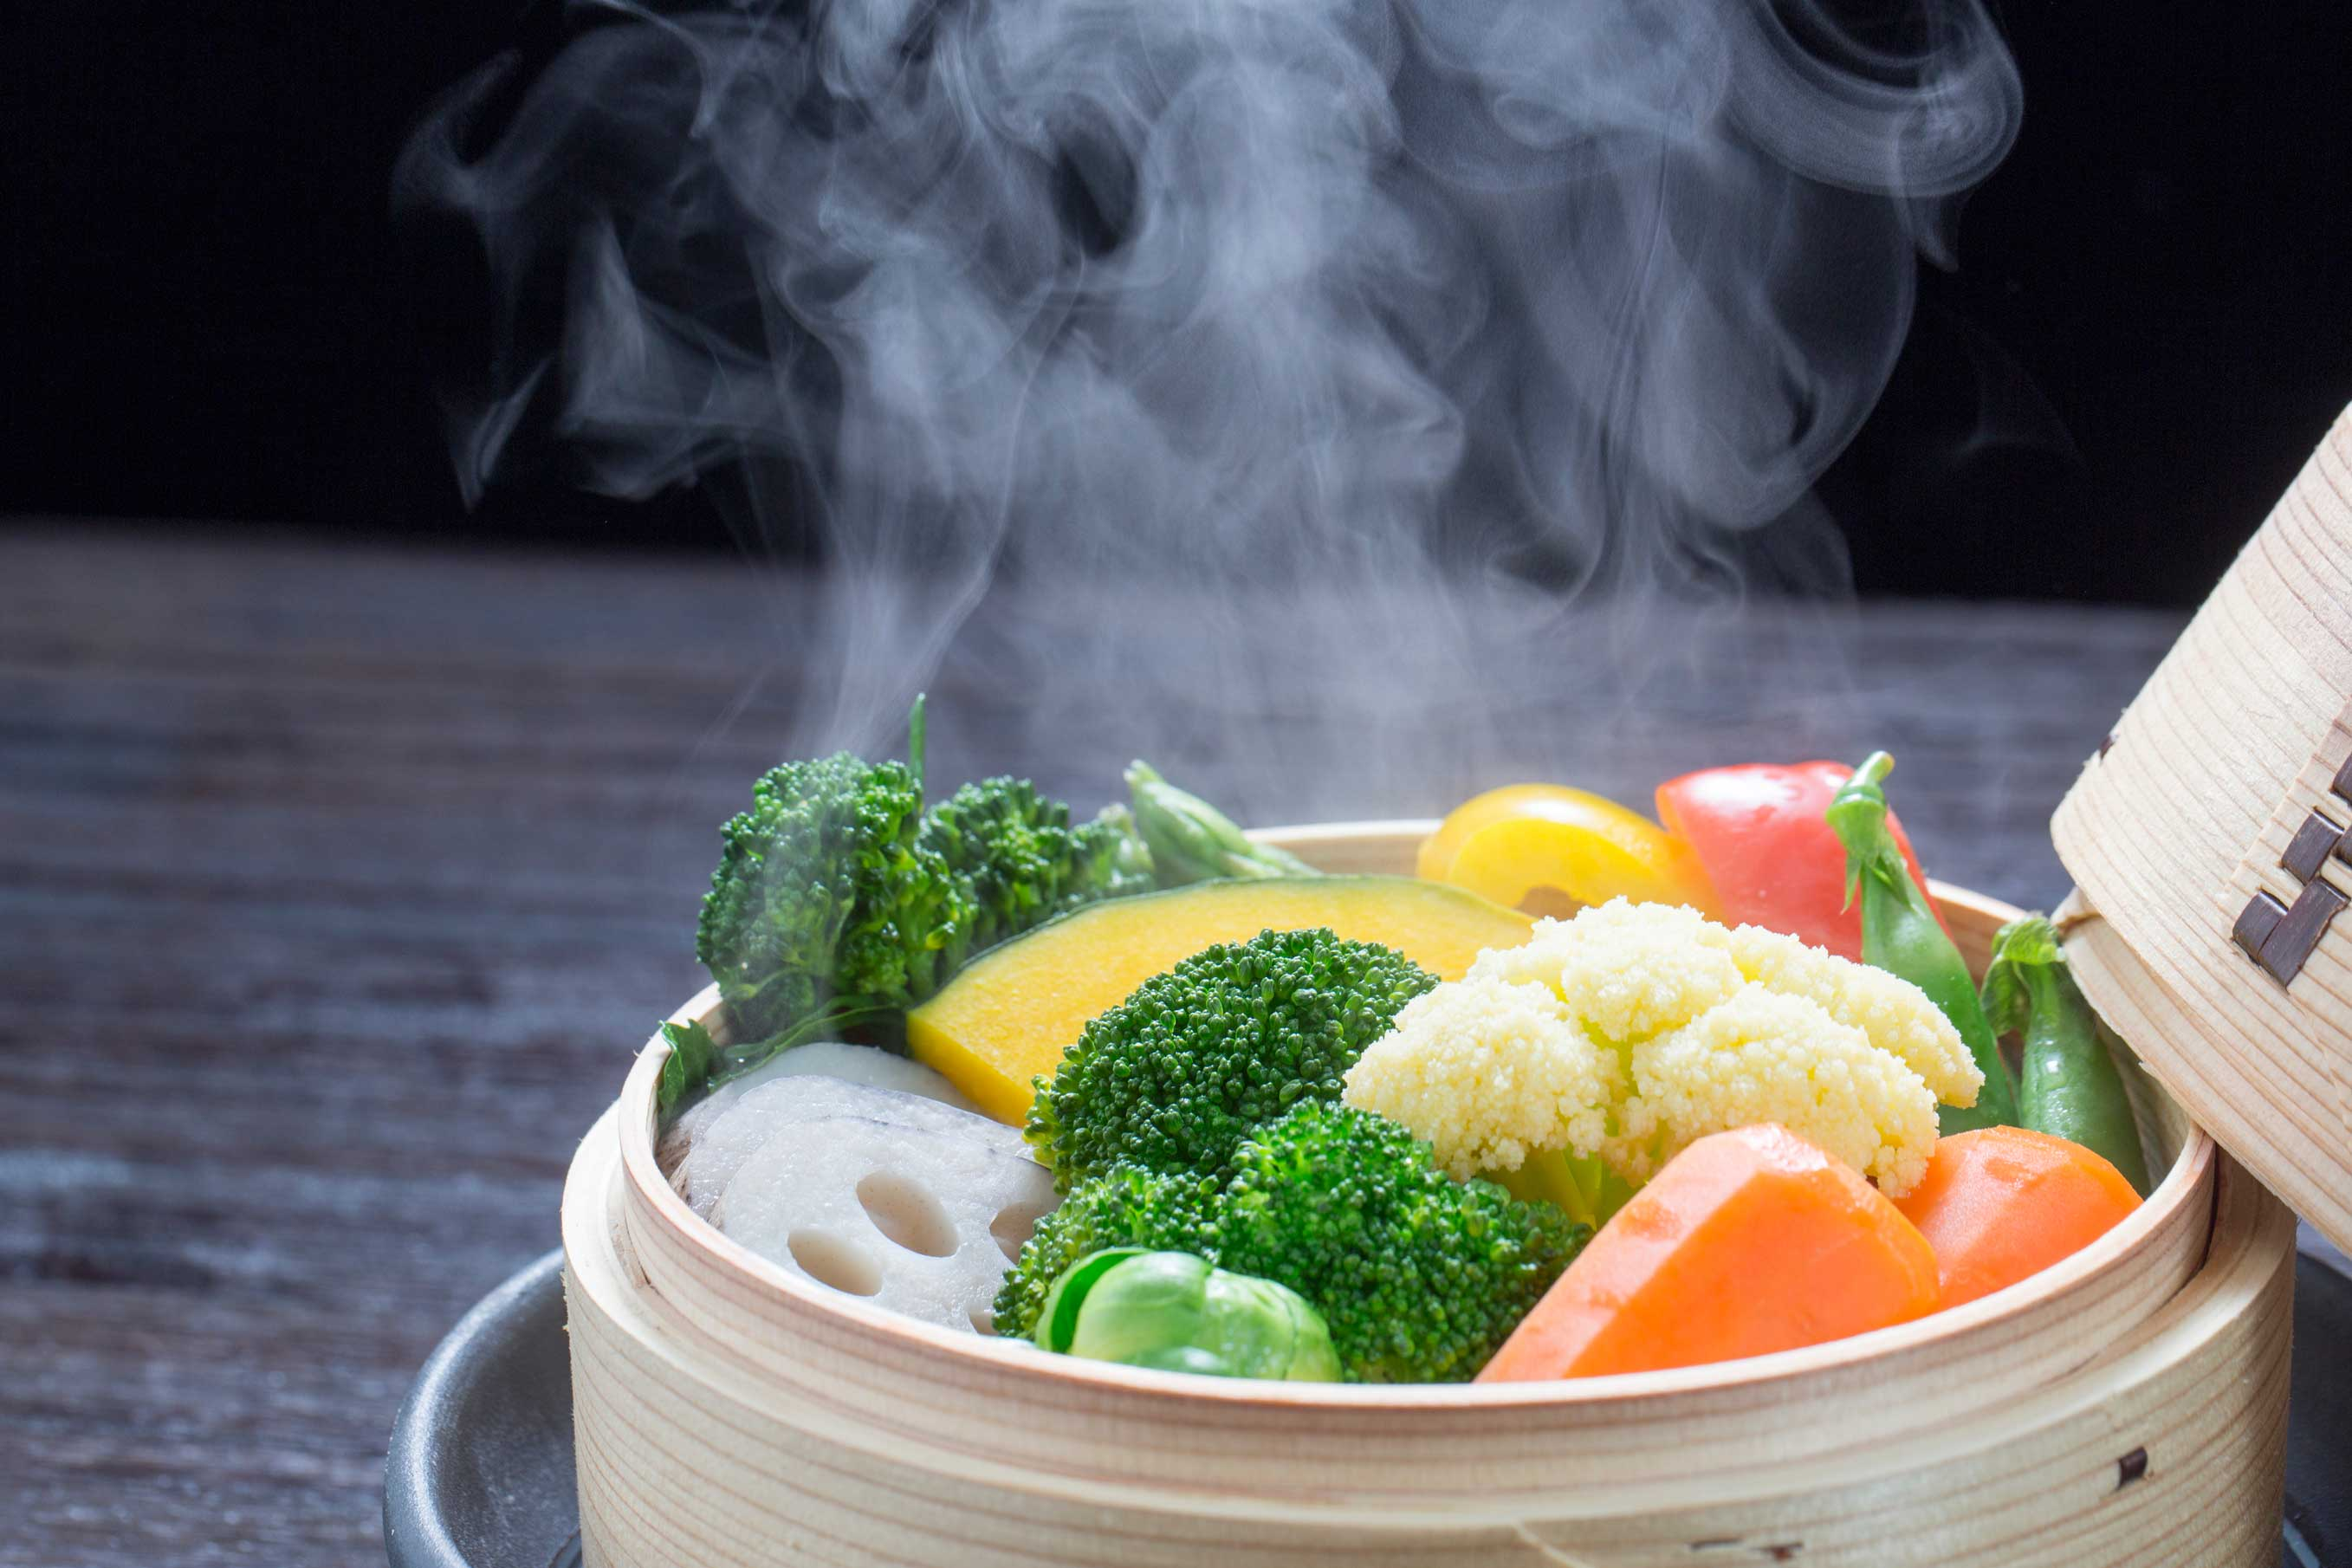 Aparato Para Cocinar Al Vapor 5 Reasons Why Steamed Food Is The Healthiest News Digest